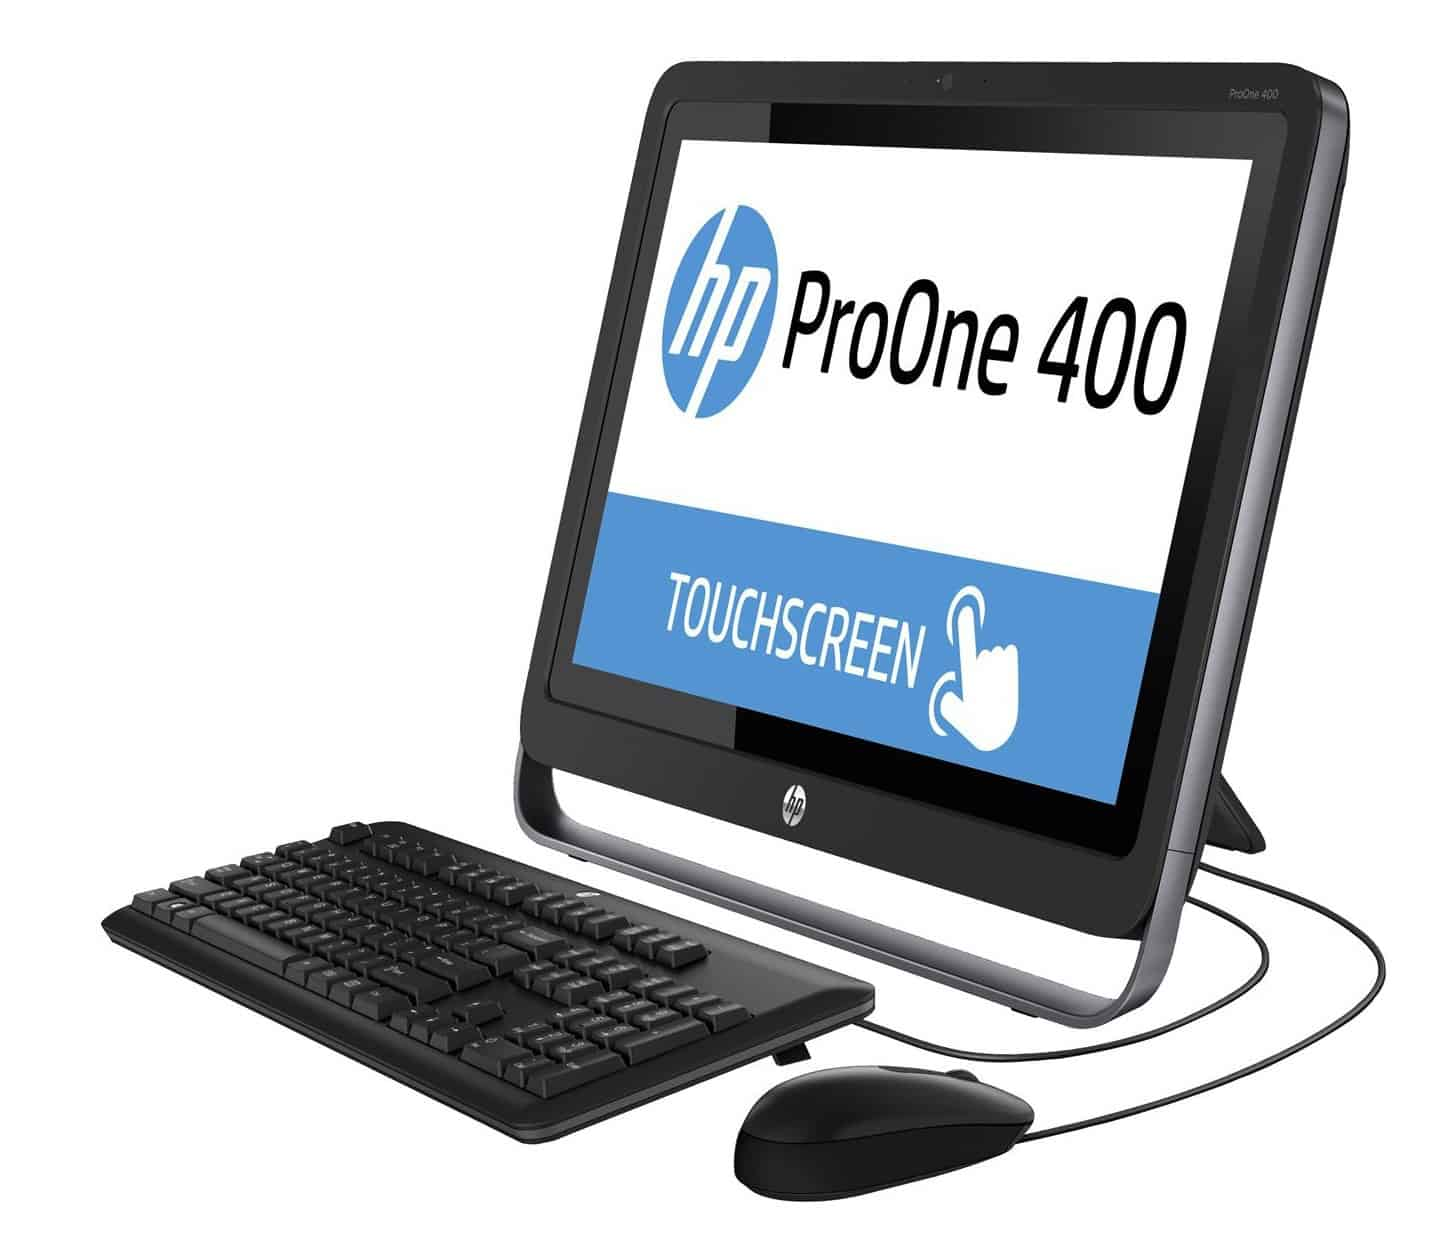 HP All-in-One ProOne 400 - un nou model si o configuratie STRONG!